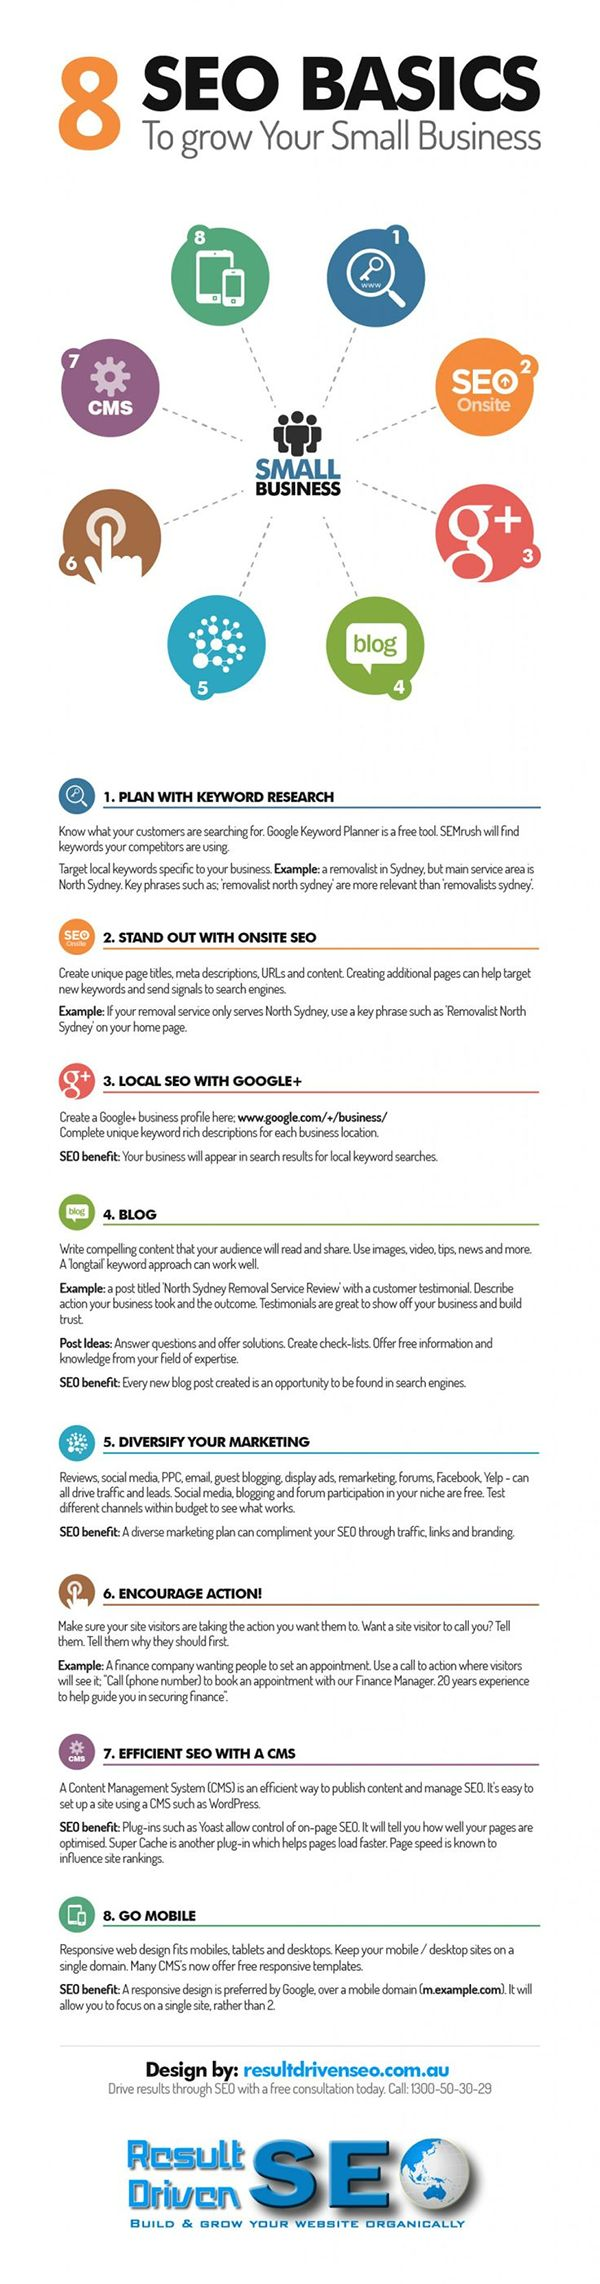 8 #SEO Basics to grow your small #Business #infographic